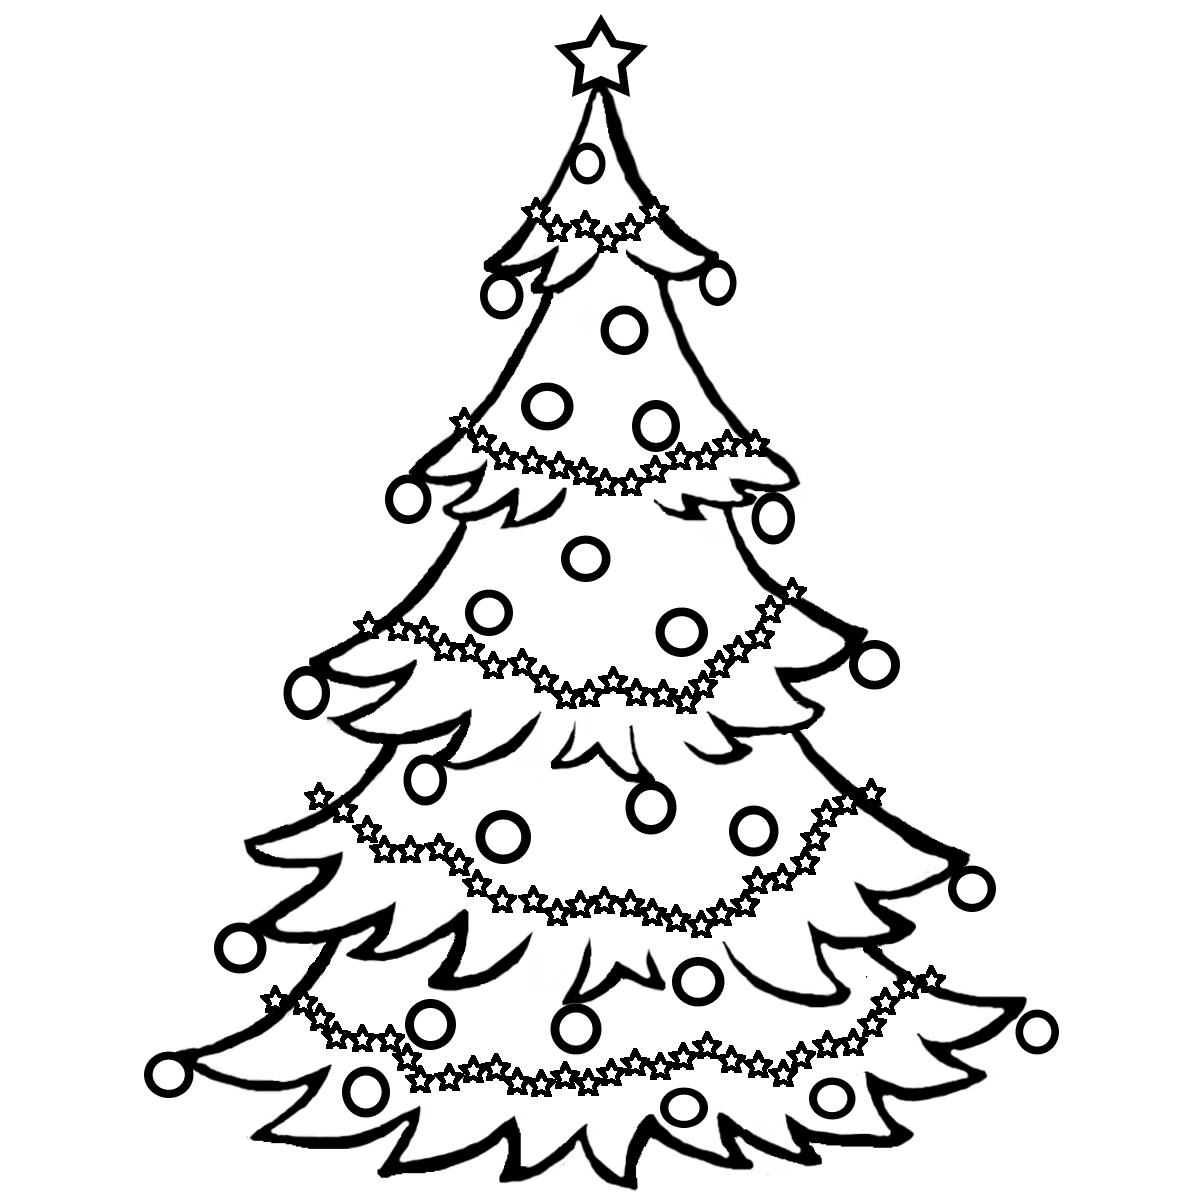 pine%20tree%20clipart%20black%20and%20white